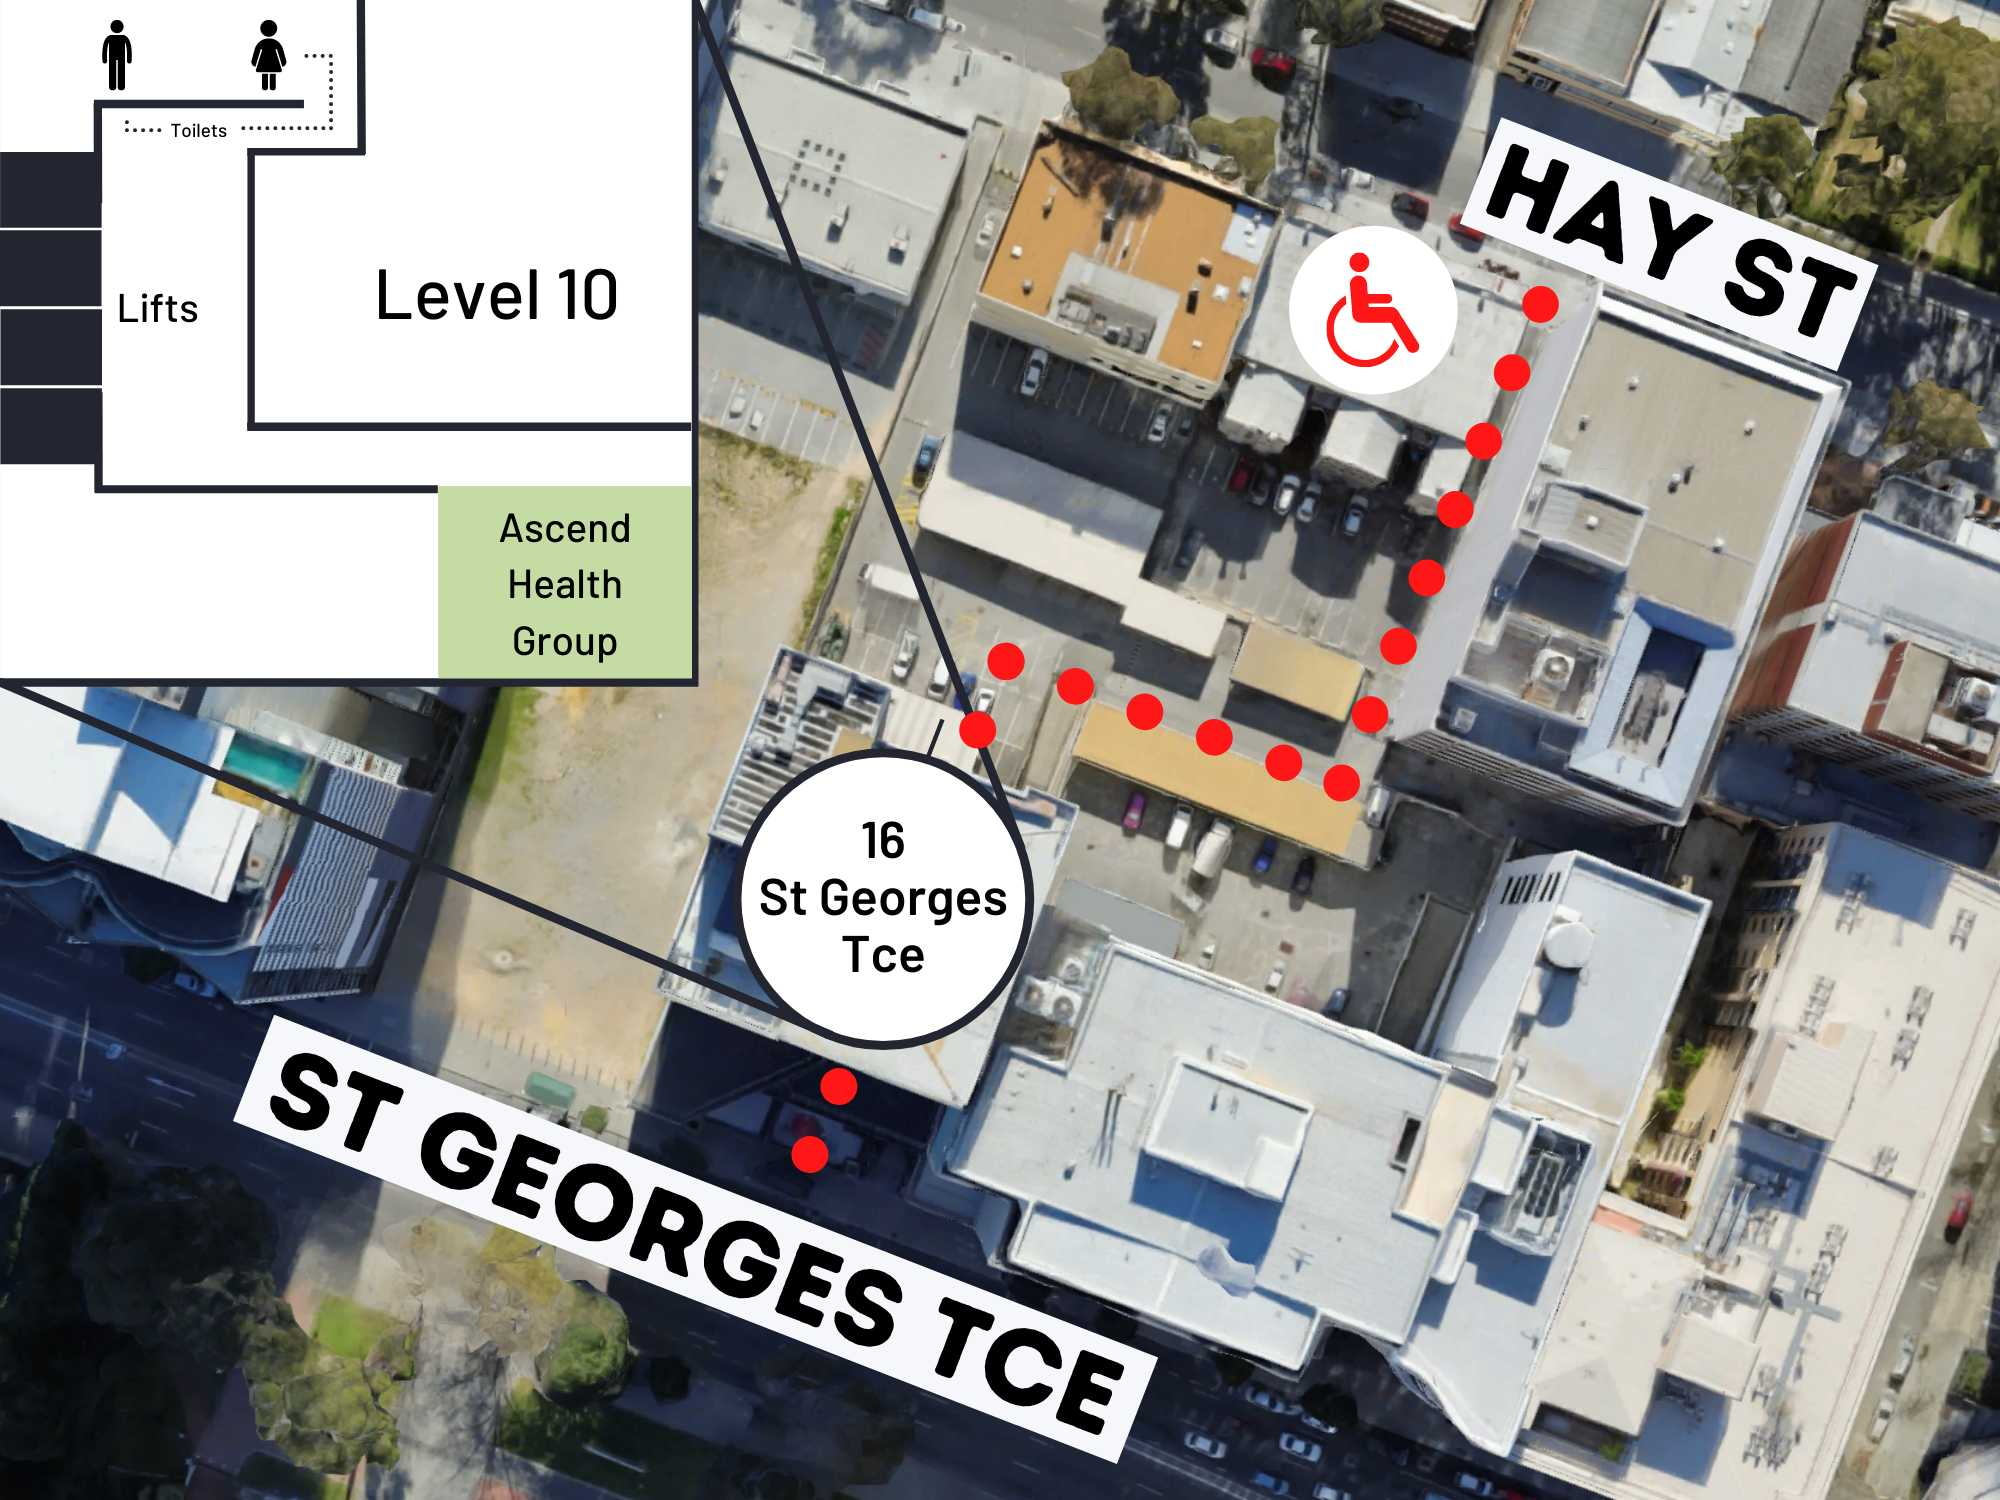 Image of accessing the building at 16 St Georges Terrace in Perth and the location of Ascend Health Group on Level 10